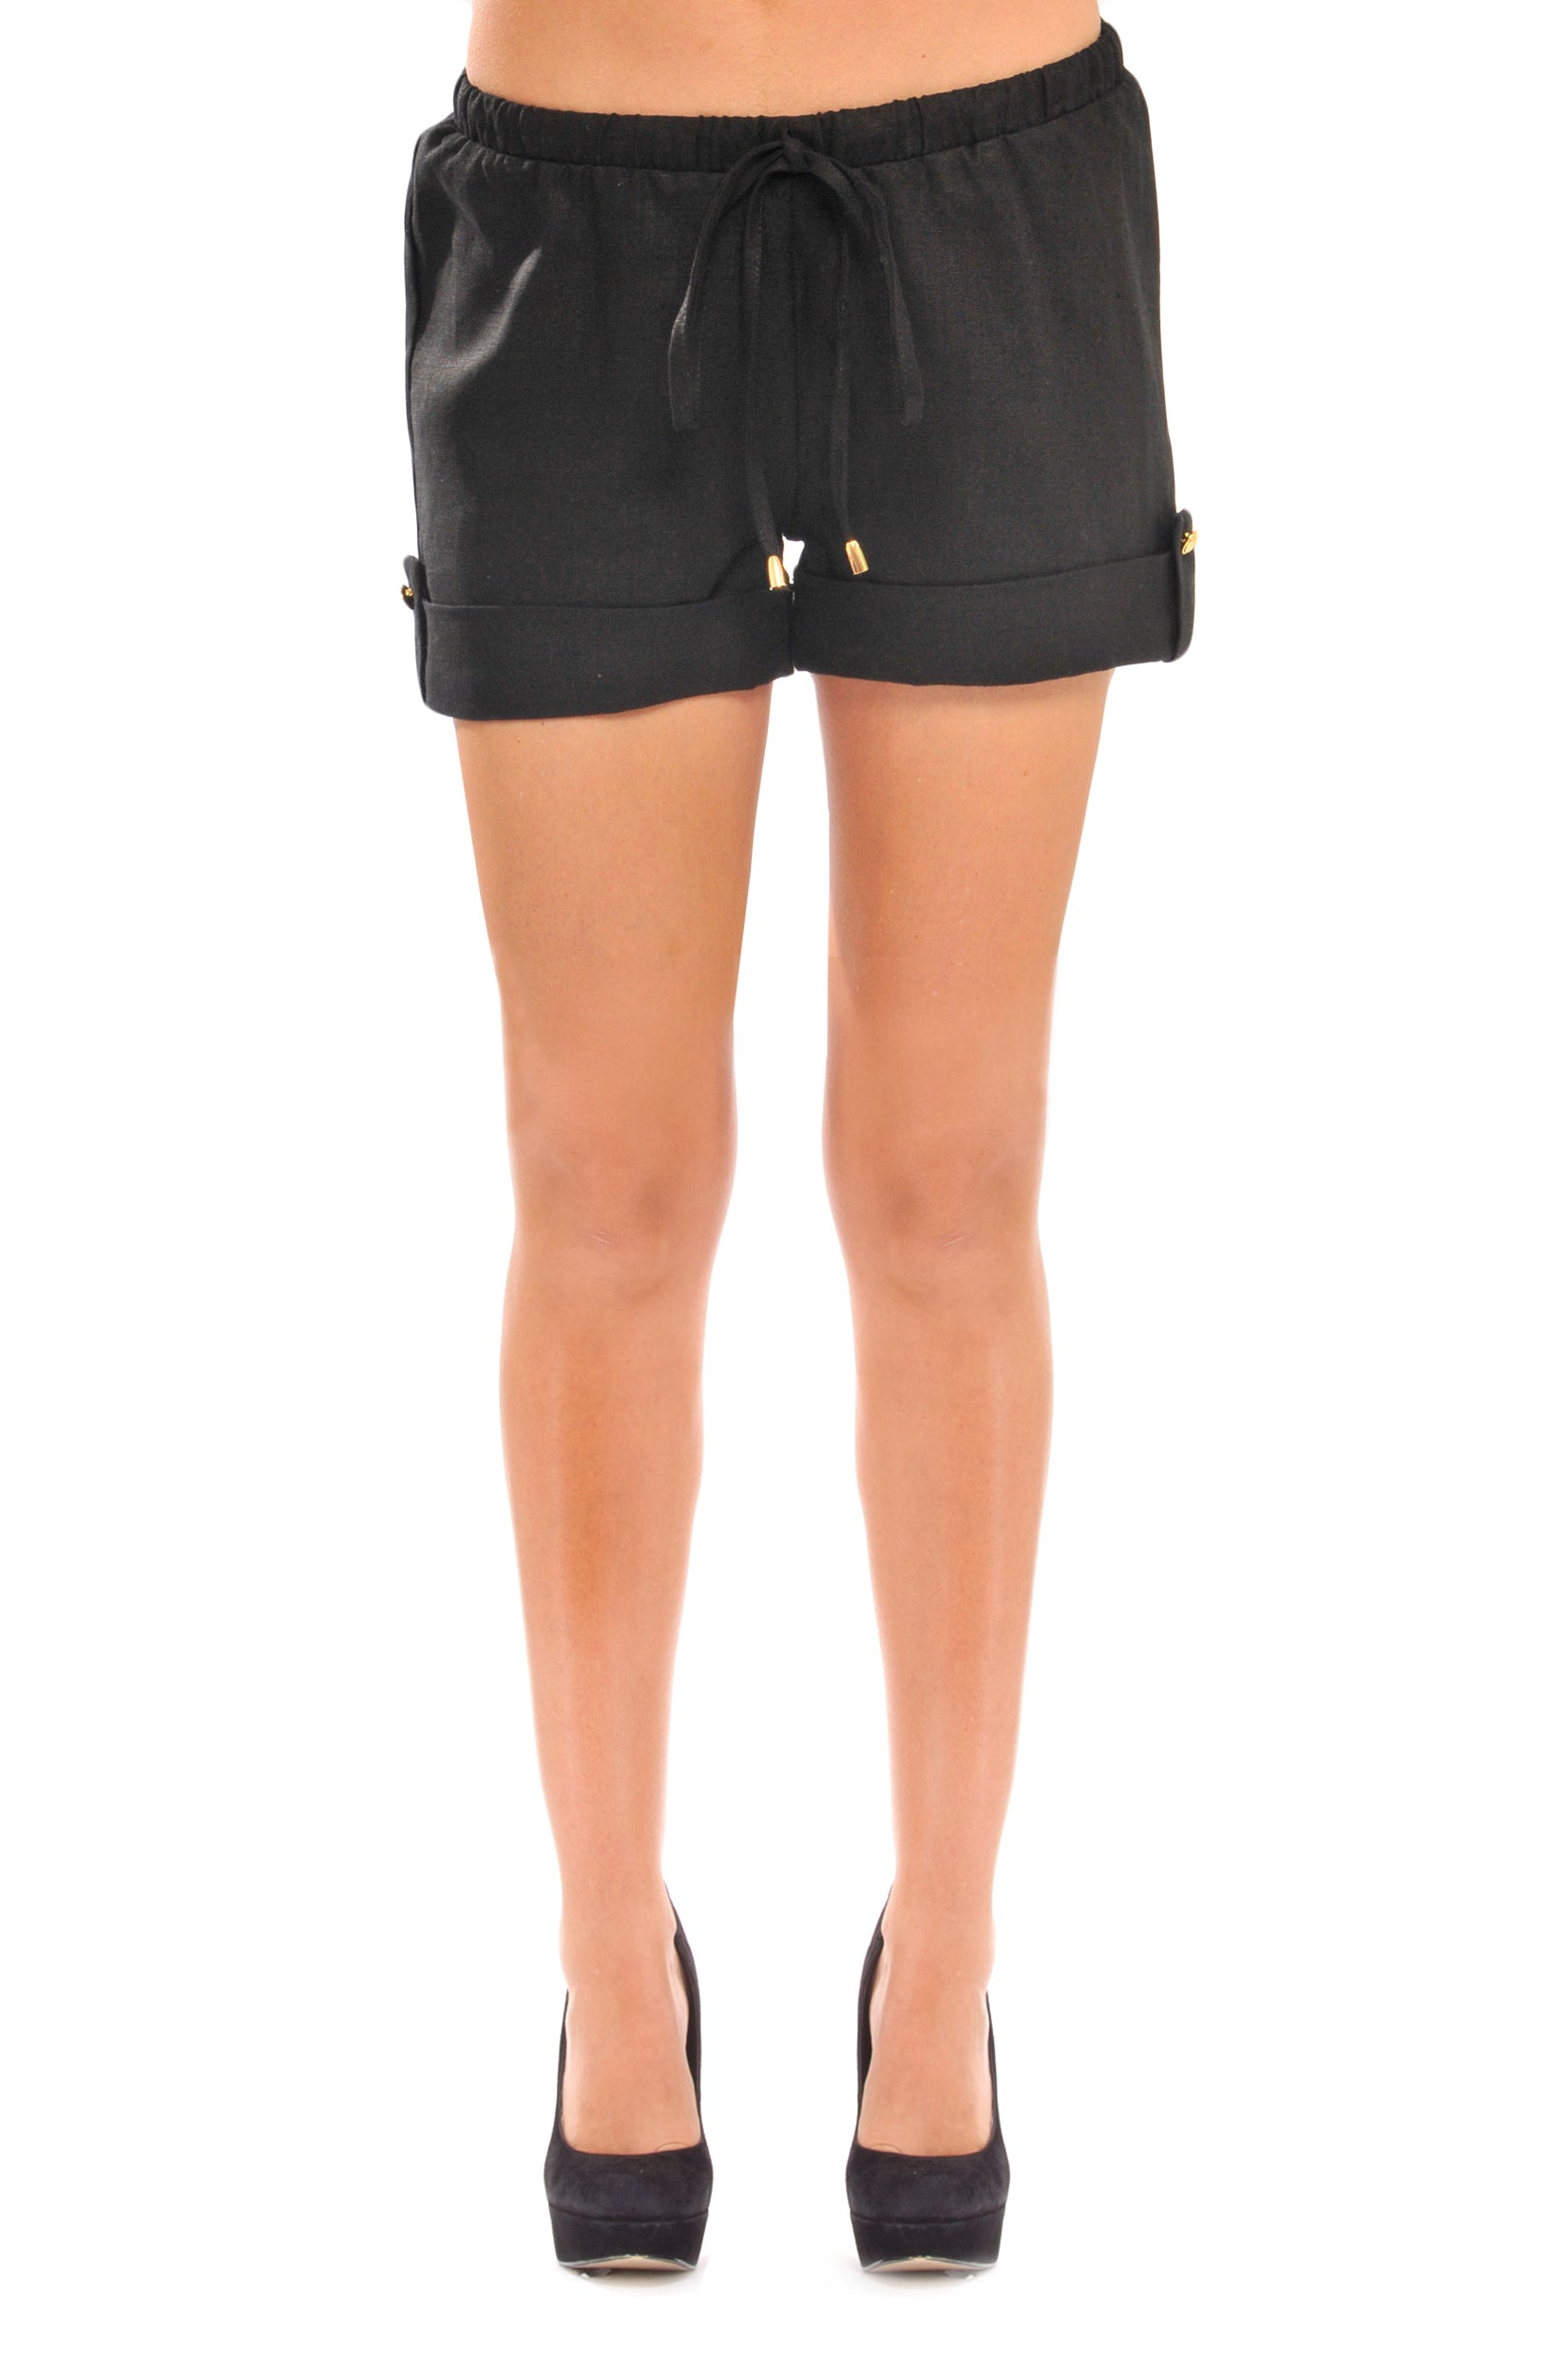 Z Lina Drawstring Shorts